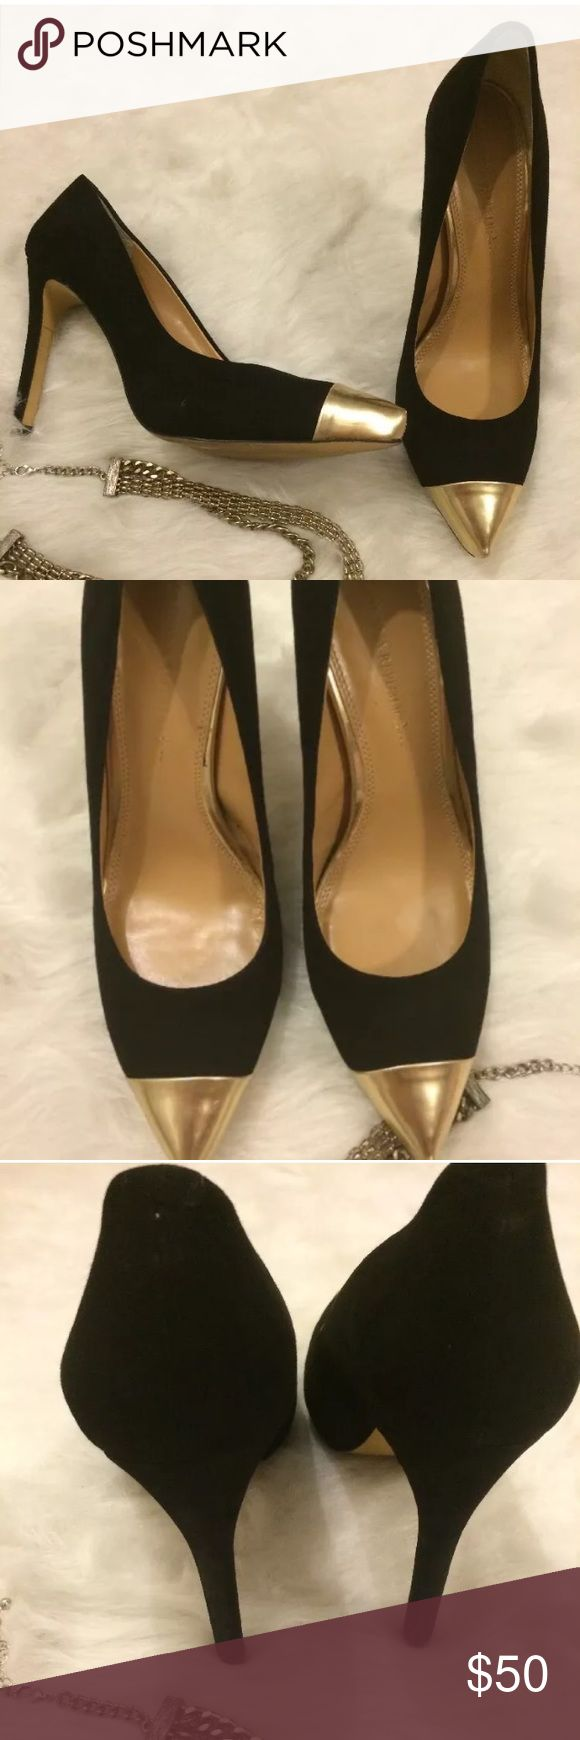 BANANA REPUBLIC Heels Womens, Sz 9 Gold Cap Beautiful Banana Republic suede heels with gold toe, Great for the holiday party. Overall very good condition there is one small scuff on the side of shoe where suede has come up . Minimal not noticeable when wearing .                    Make me a offer 🙂 Banana Republic Shoes Heels